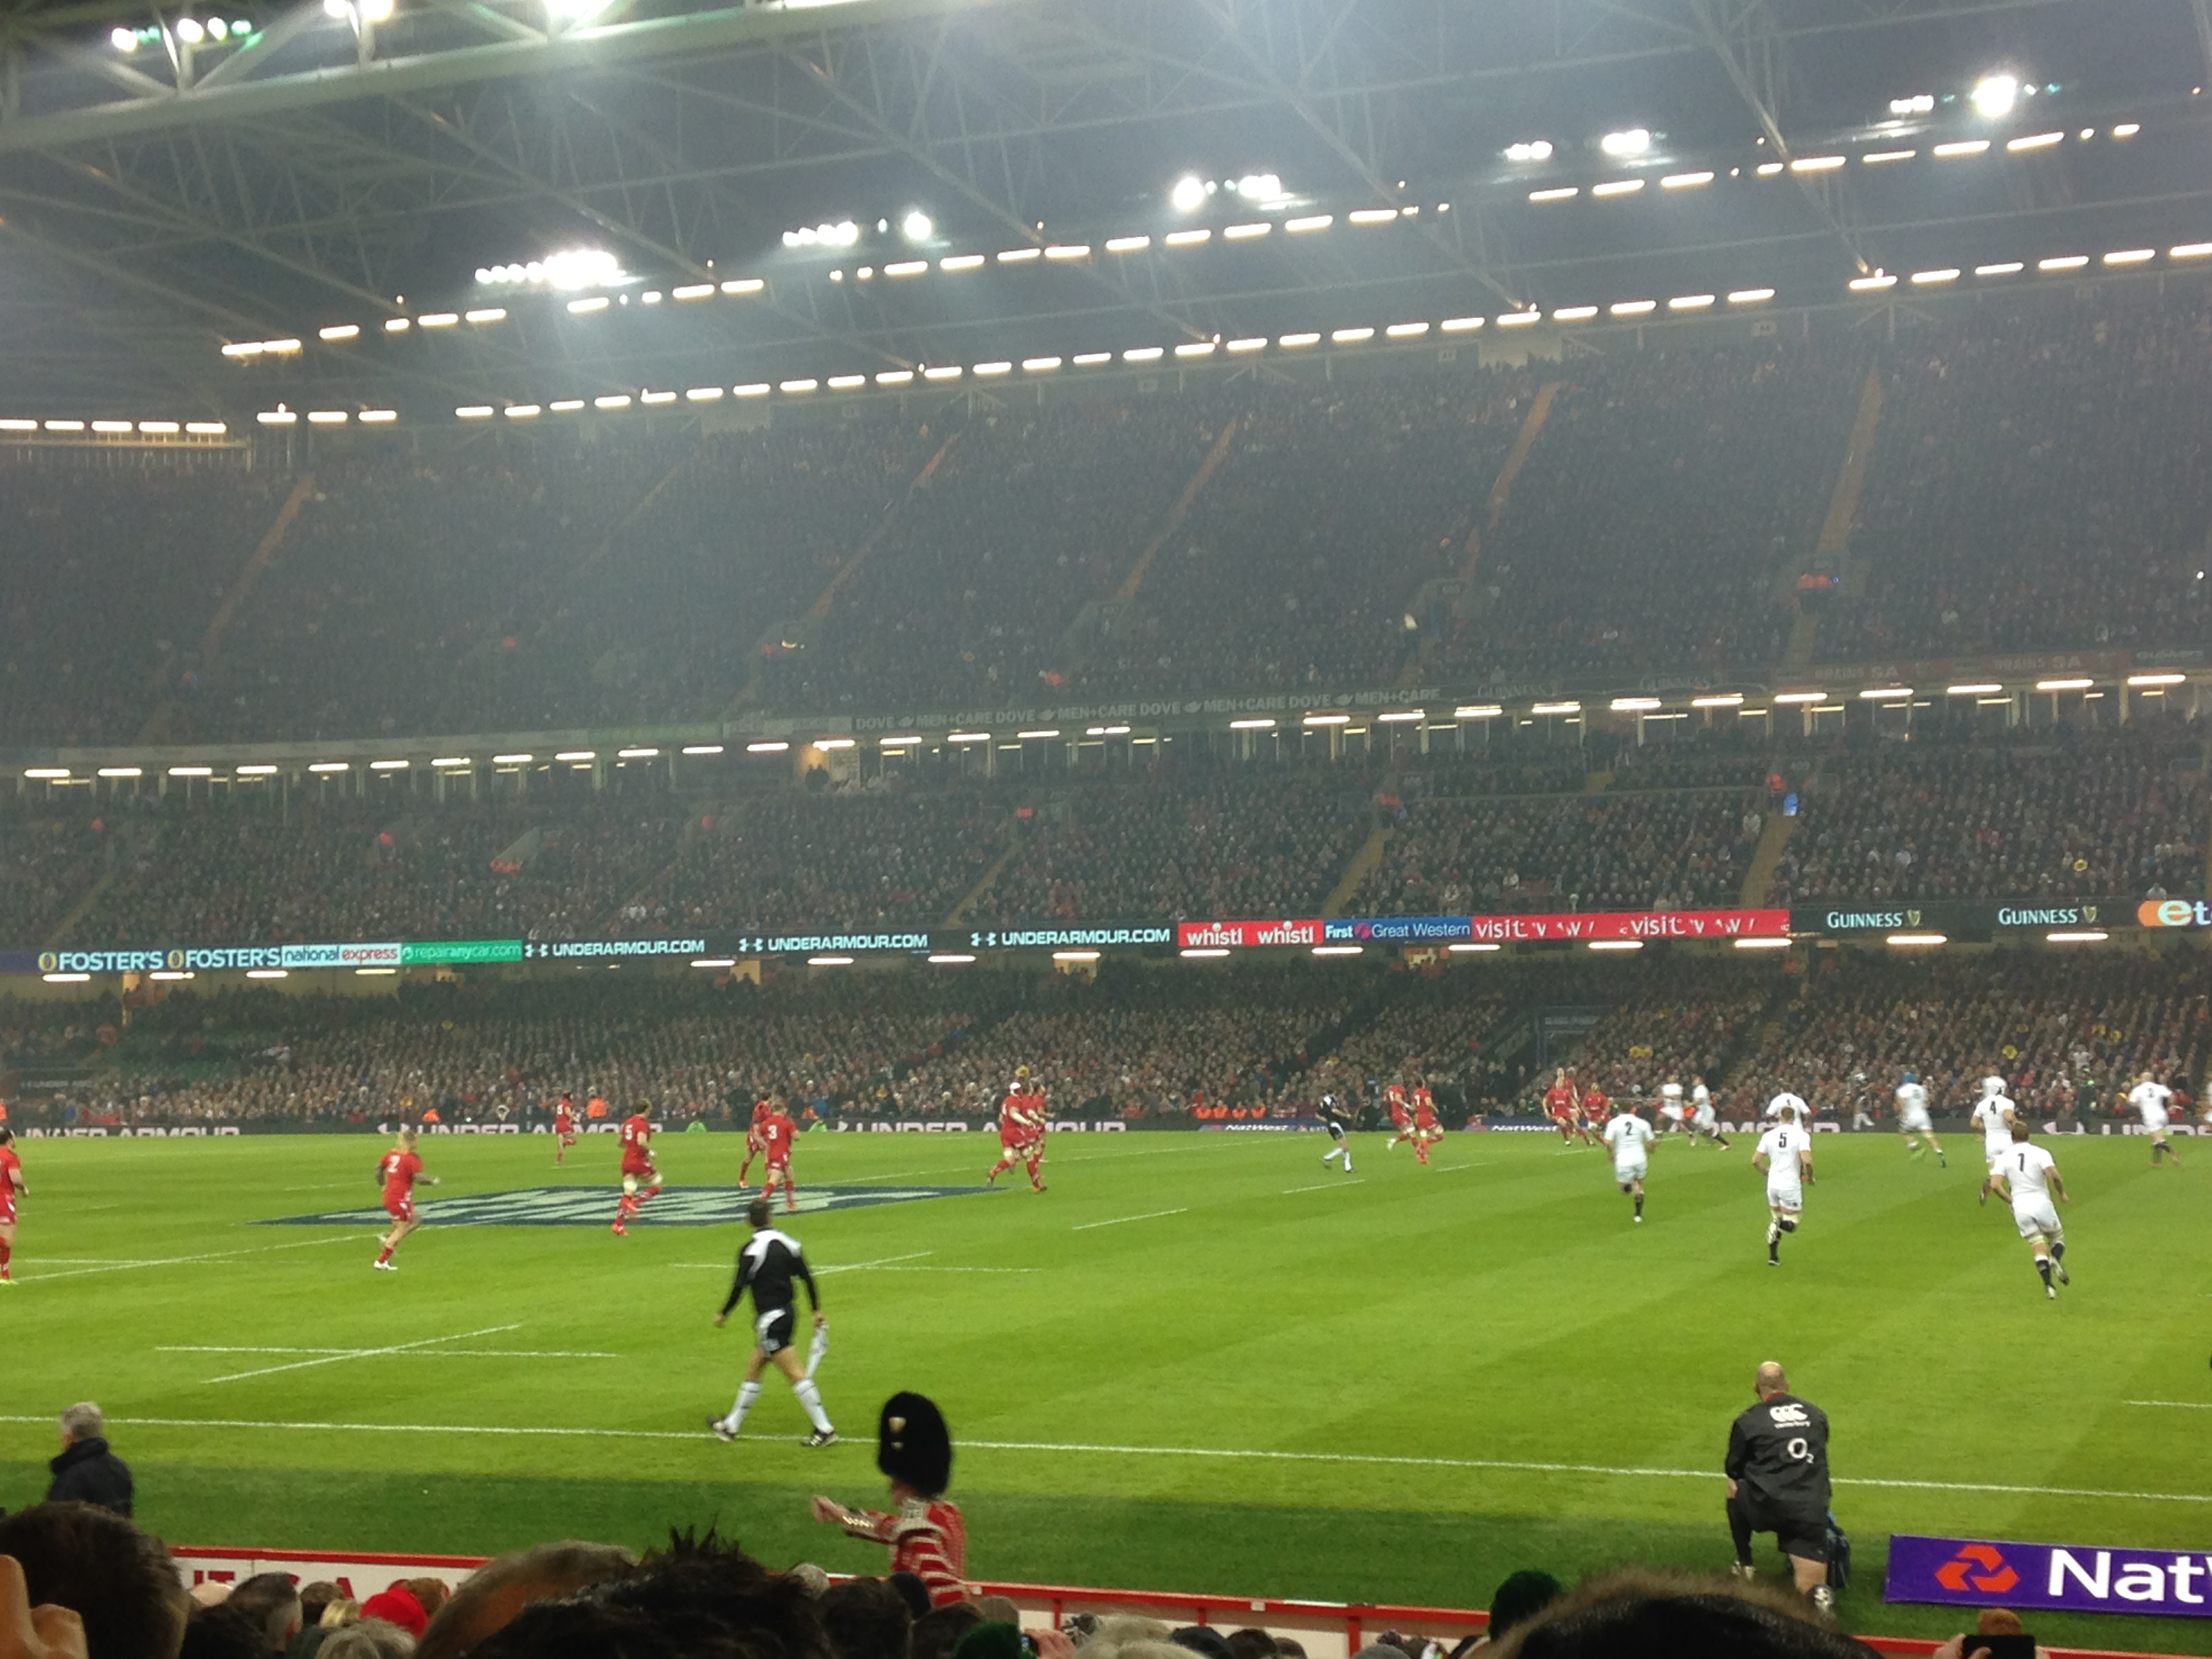 Kick off at Wales v England (6 Feb 2015)